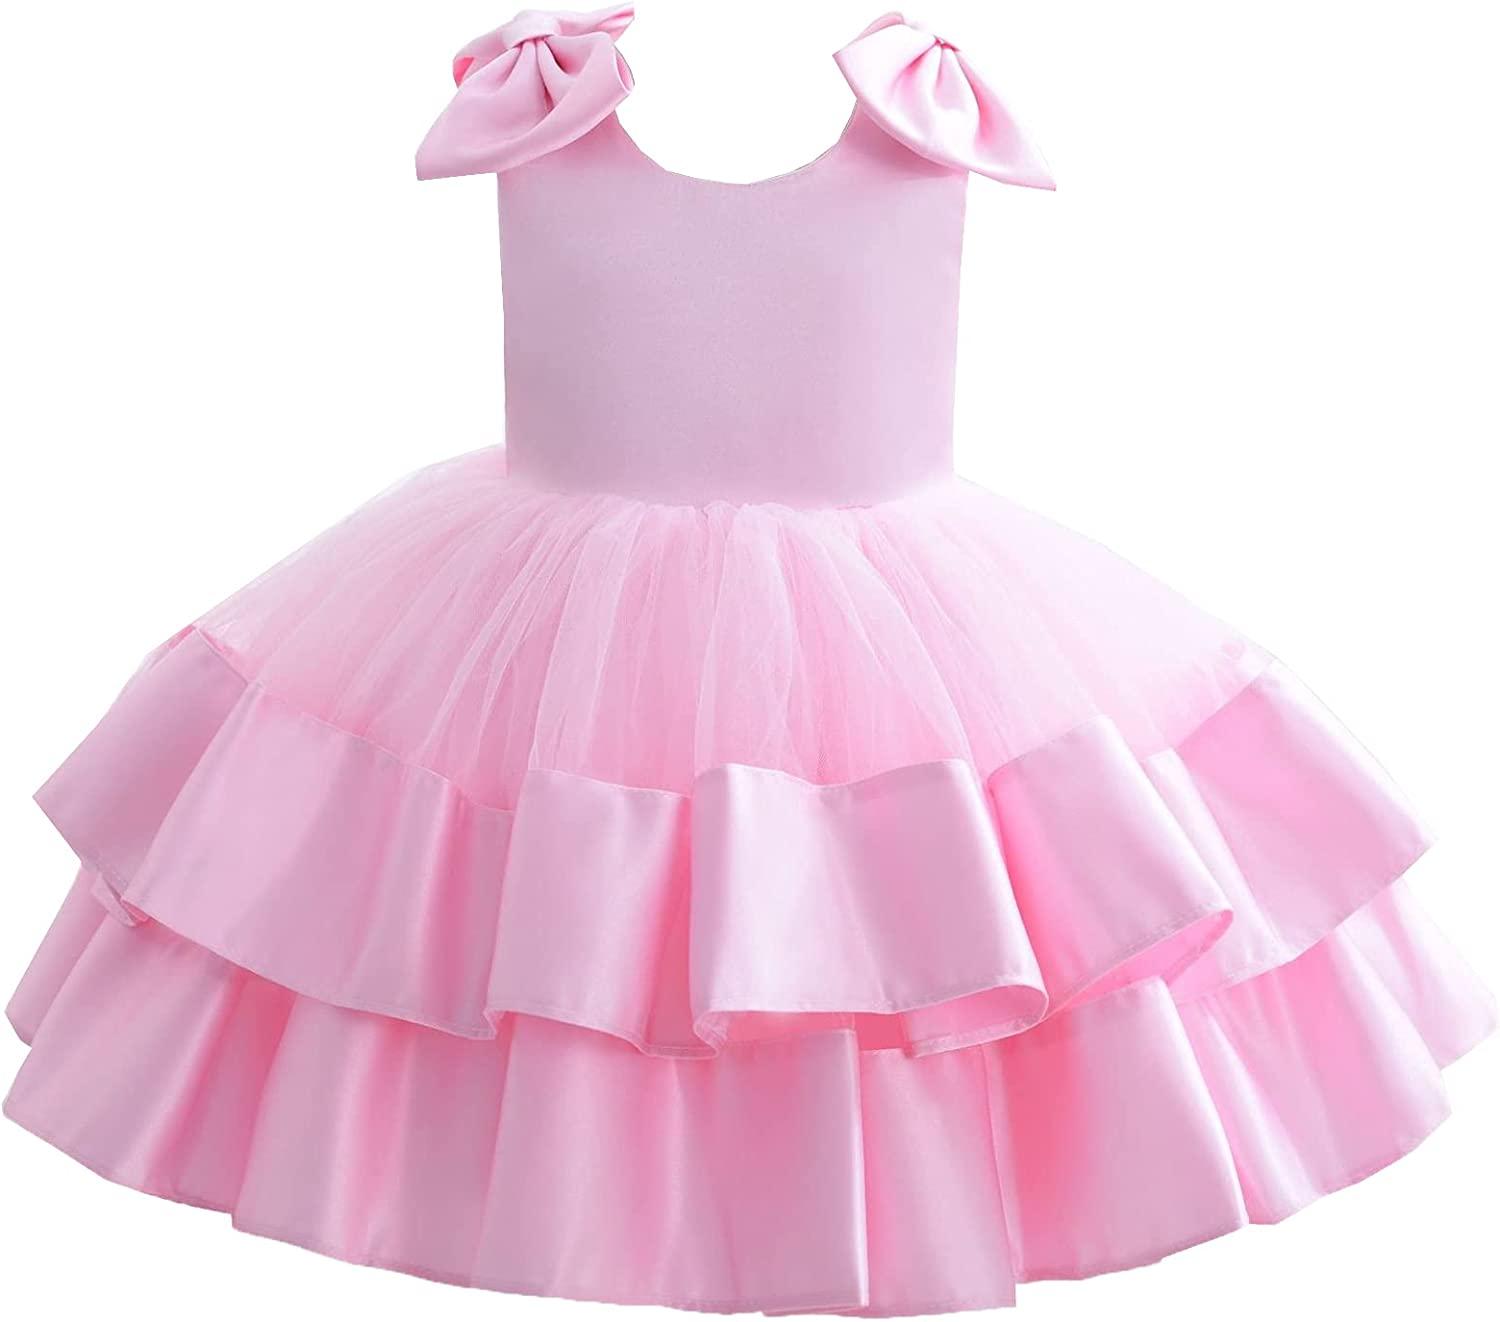 LSYXH Baby Infant Little Girls Many popular brands Clearance SALE Limited time Appliqued Flower Bi Big Bow